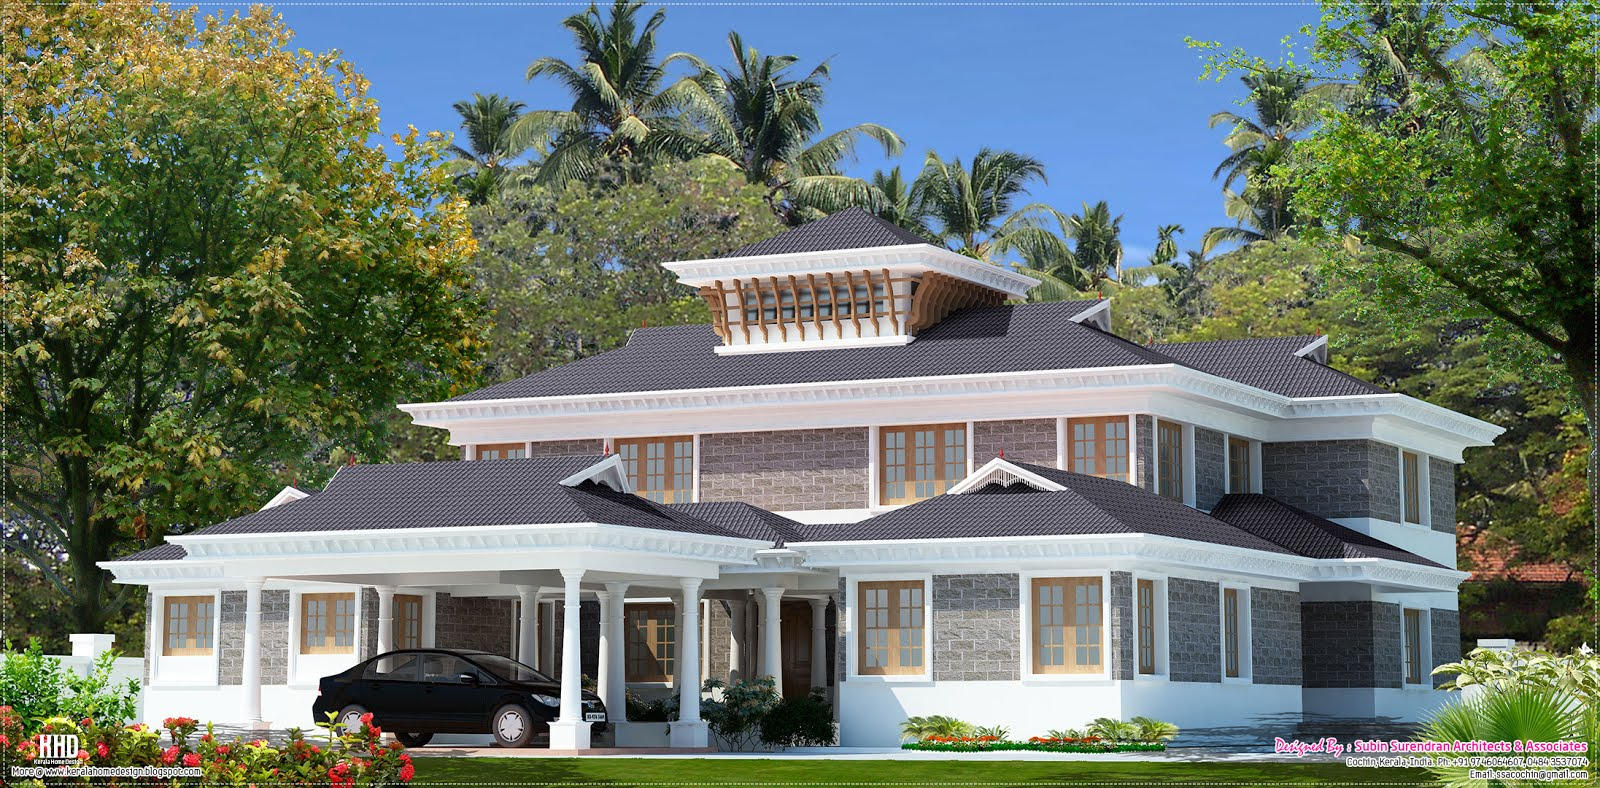 5000 luxury villa design kerala home design and for Floor plans for 5000 sq ft homes